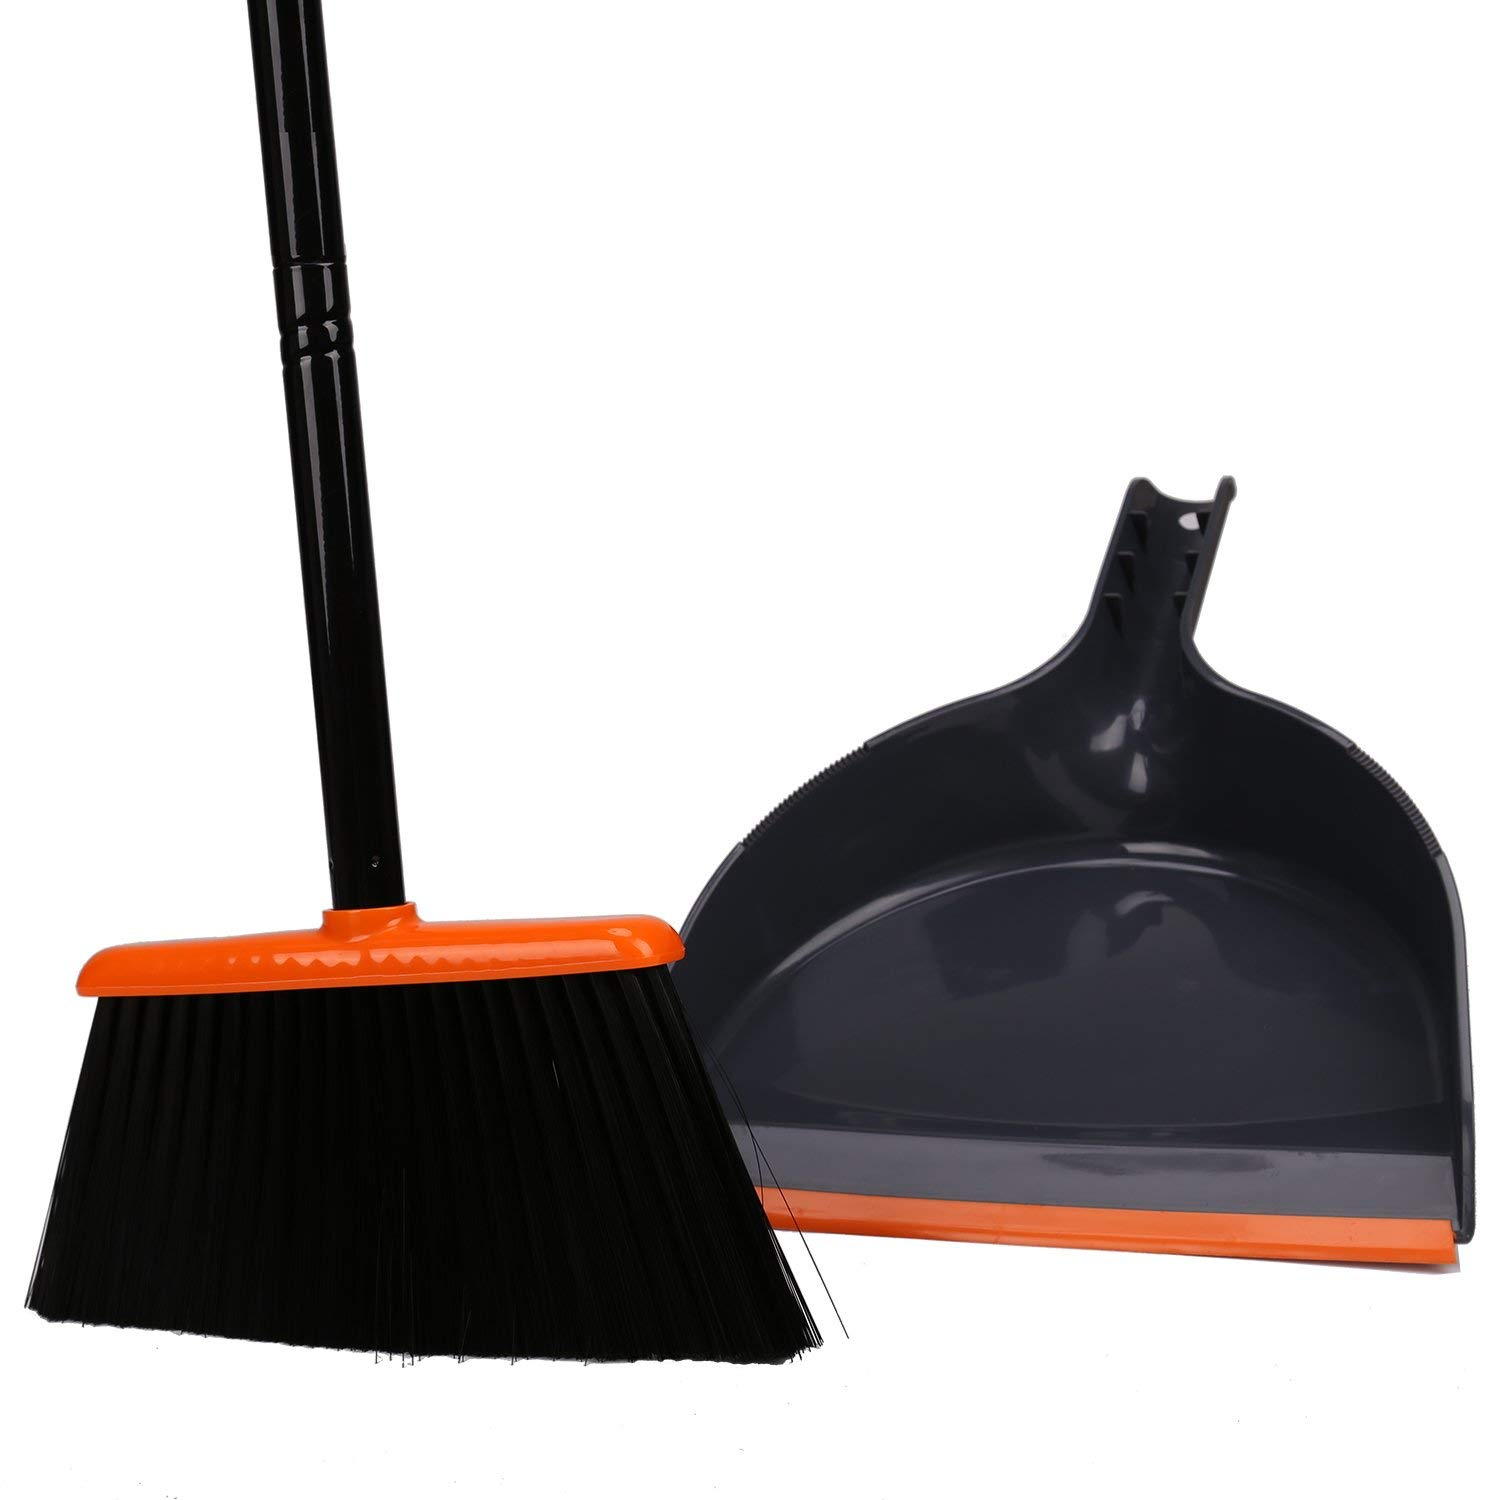 TreeLen Angle Broom and Dustpan, Dust Pan Snaps On Broom Handles - Orange